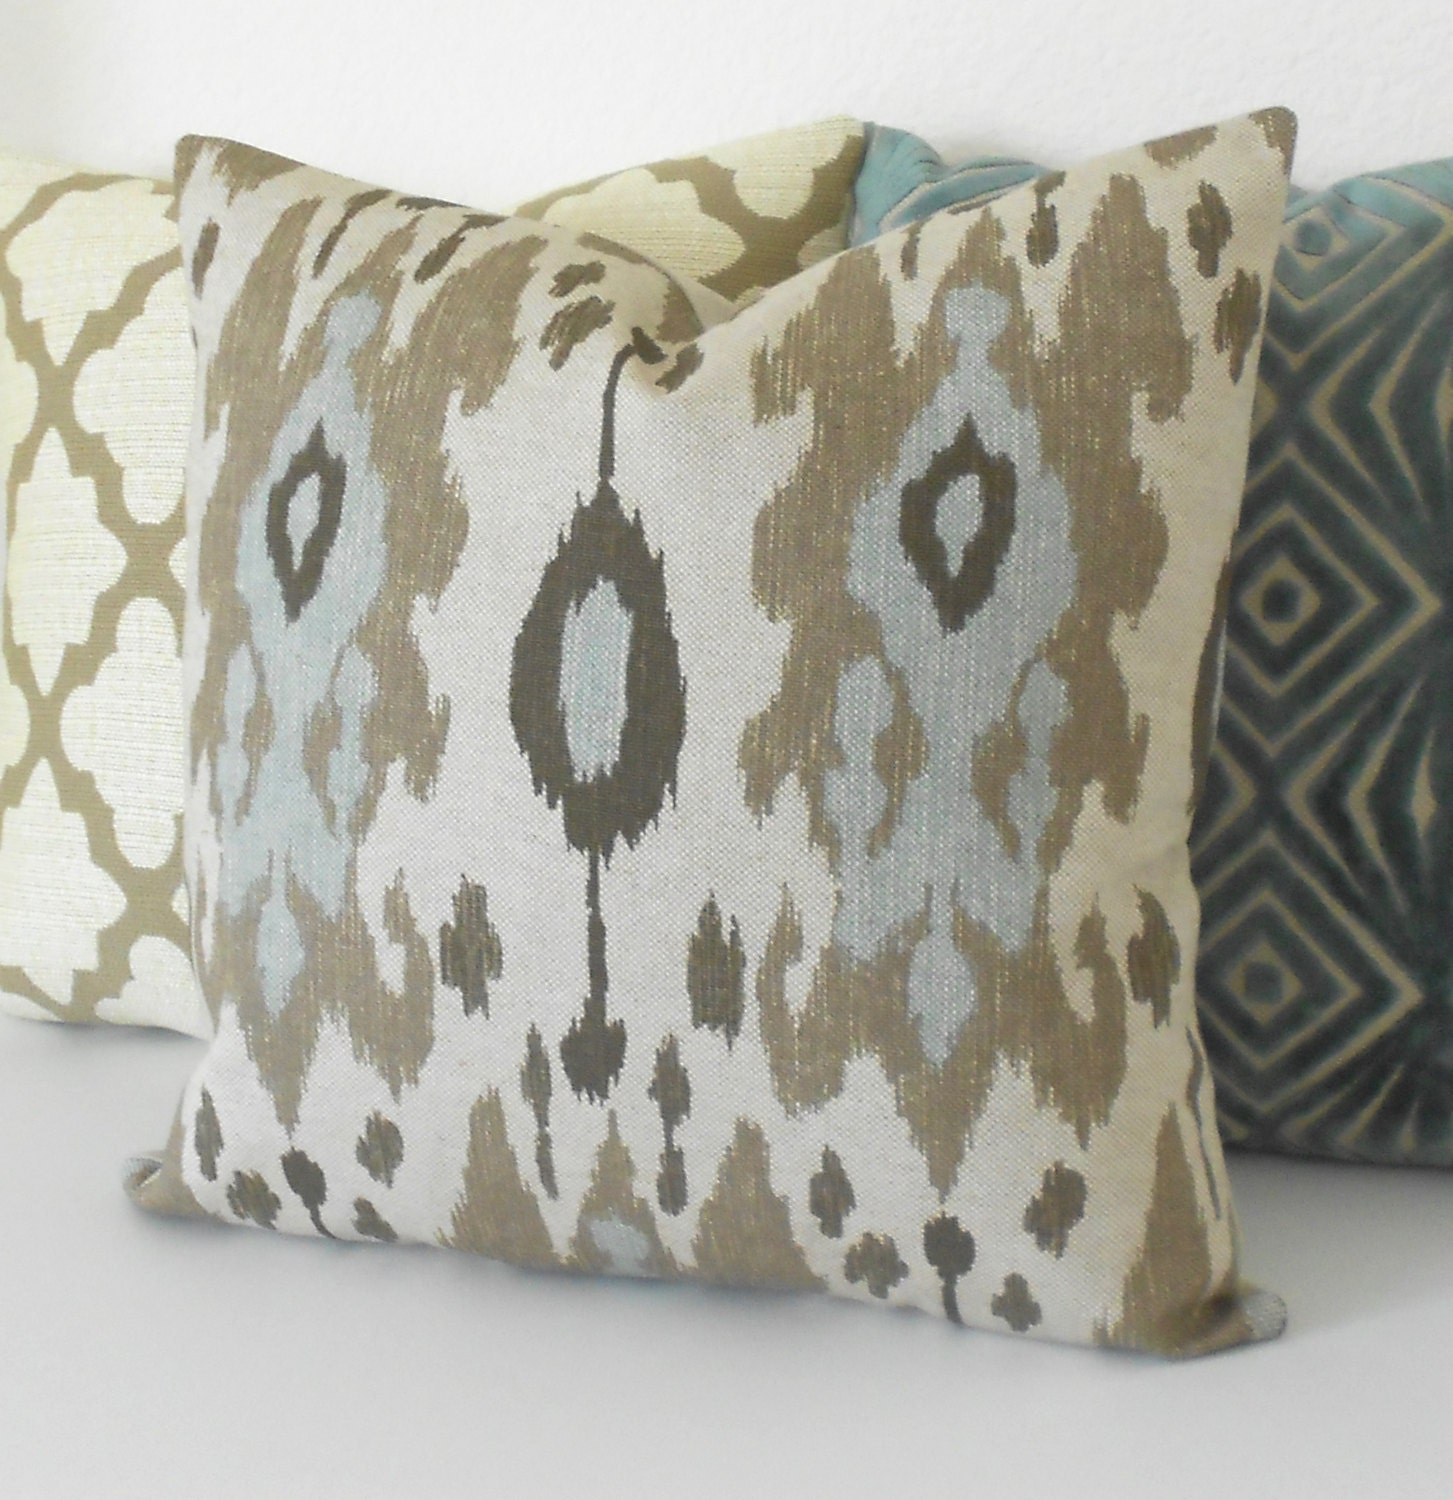 Light Brown Decorative Pillows : Ikat decorative pillow cover light blue brown and grey